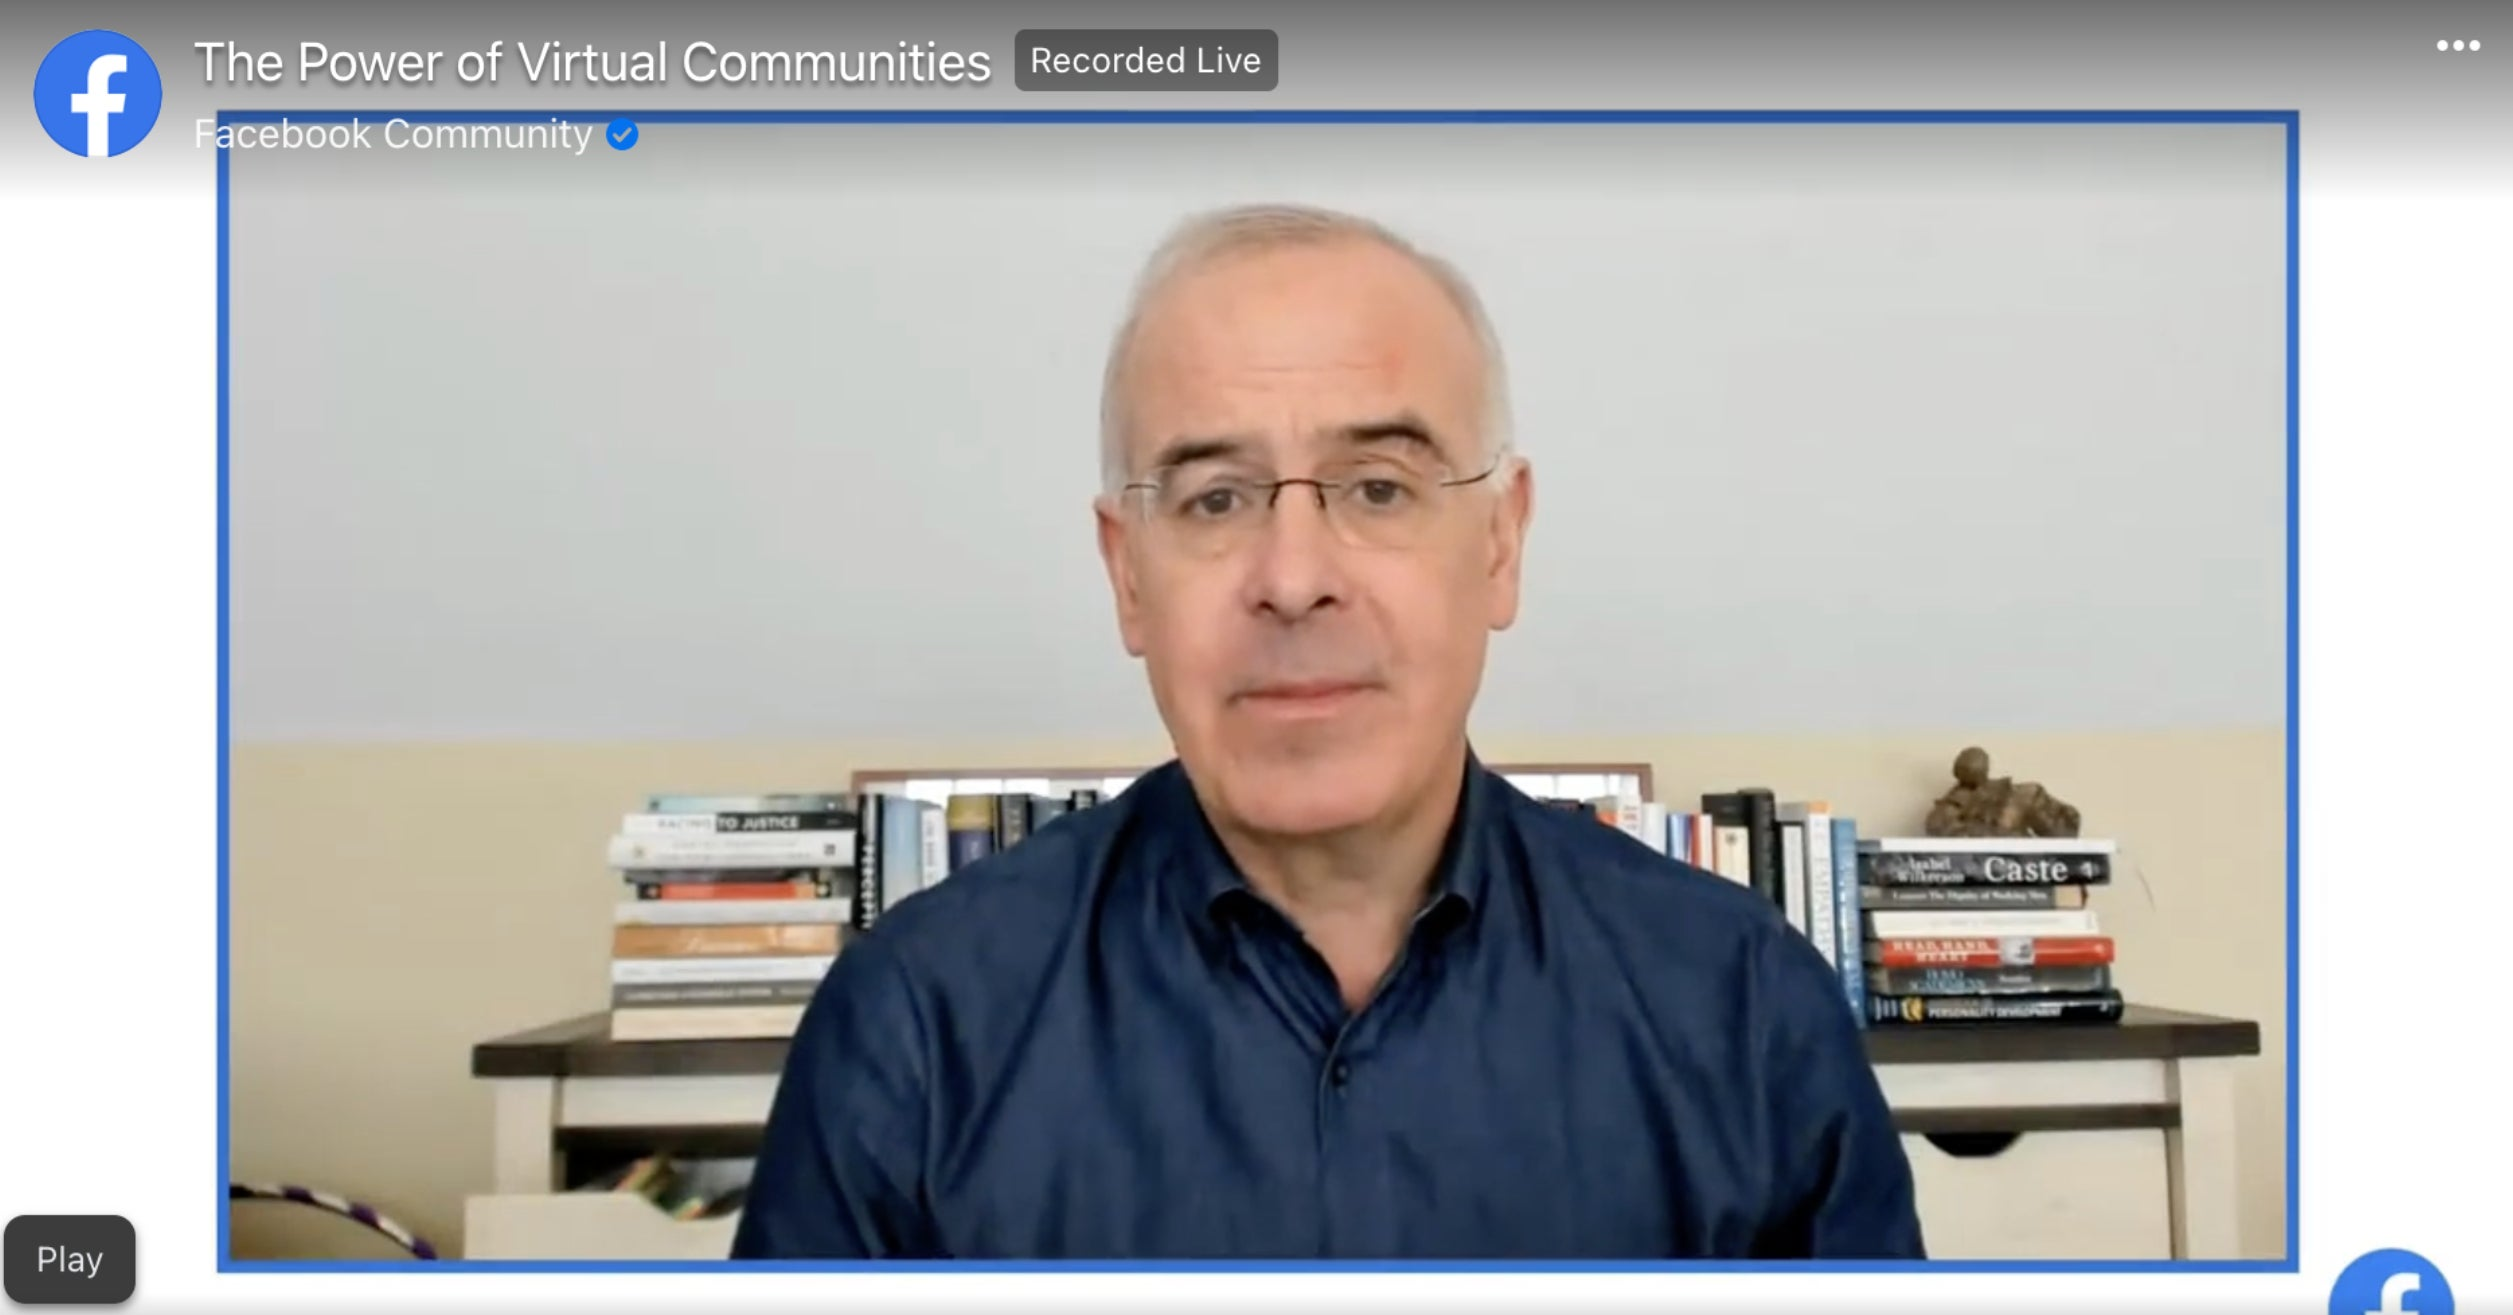 NYT Columnist David Brooks Blogged For Facebook's Corporate Site